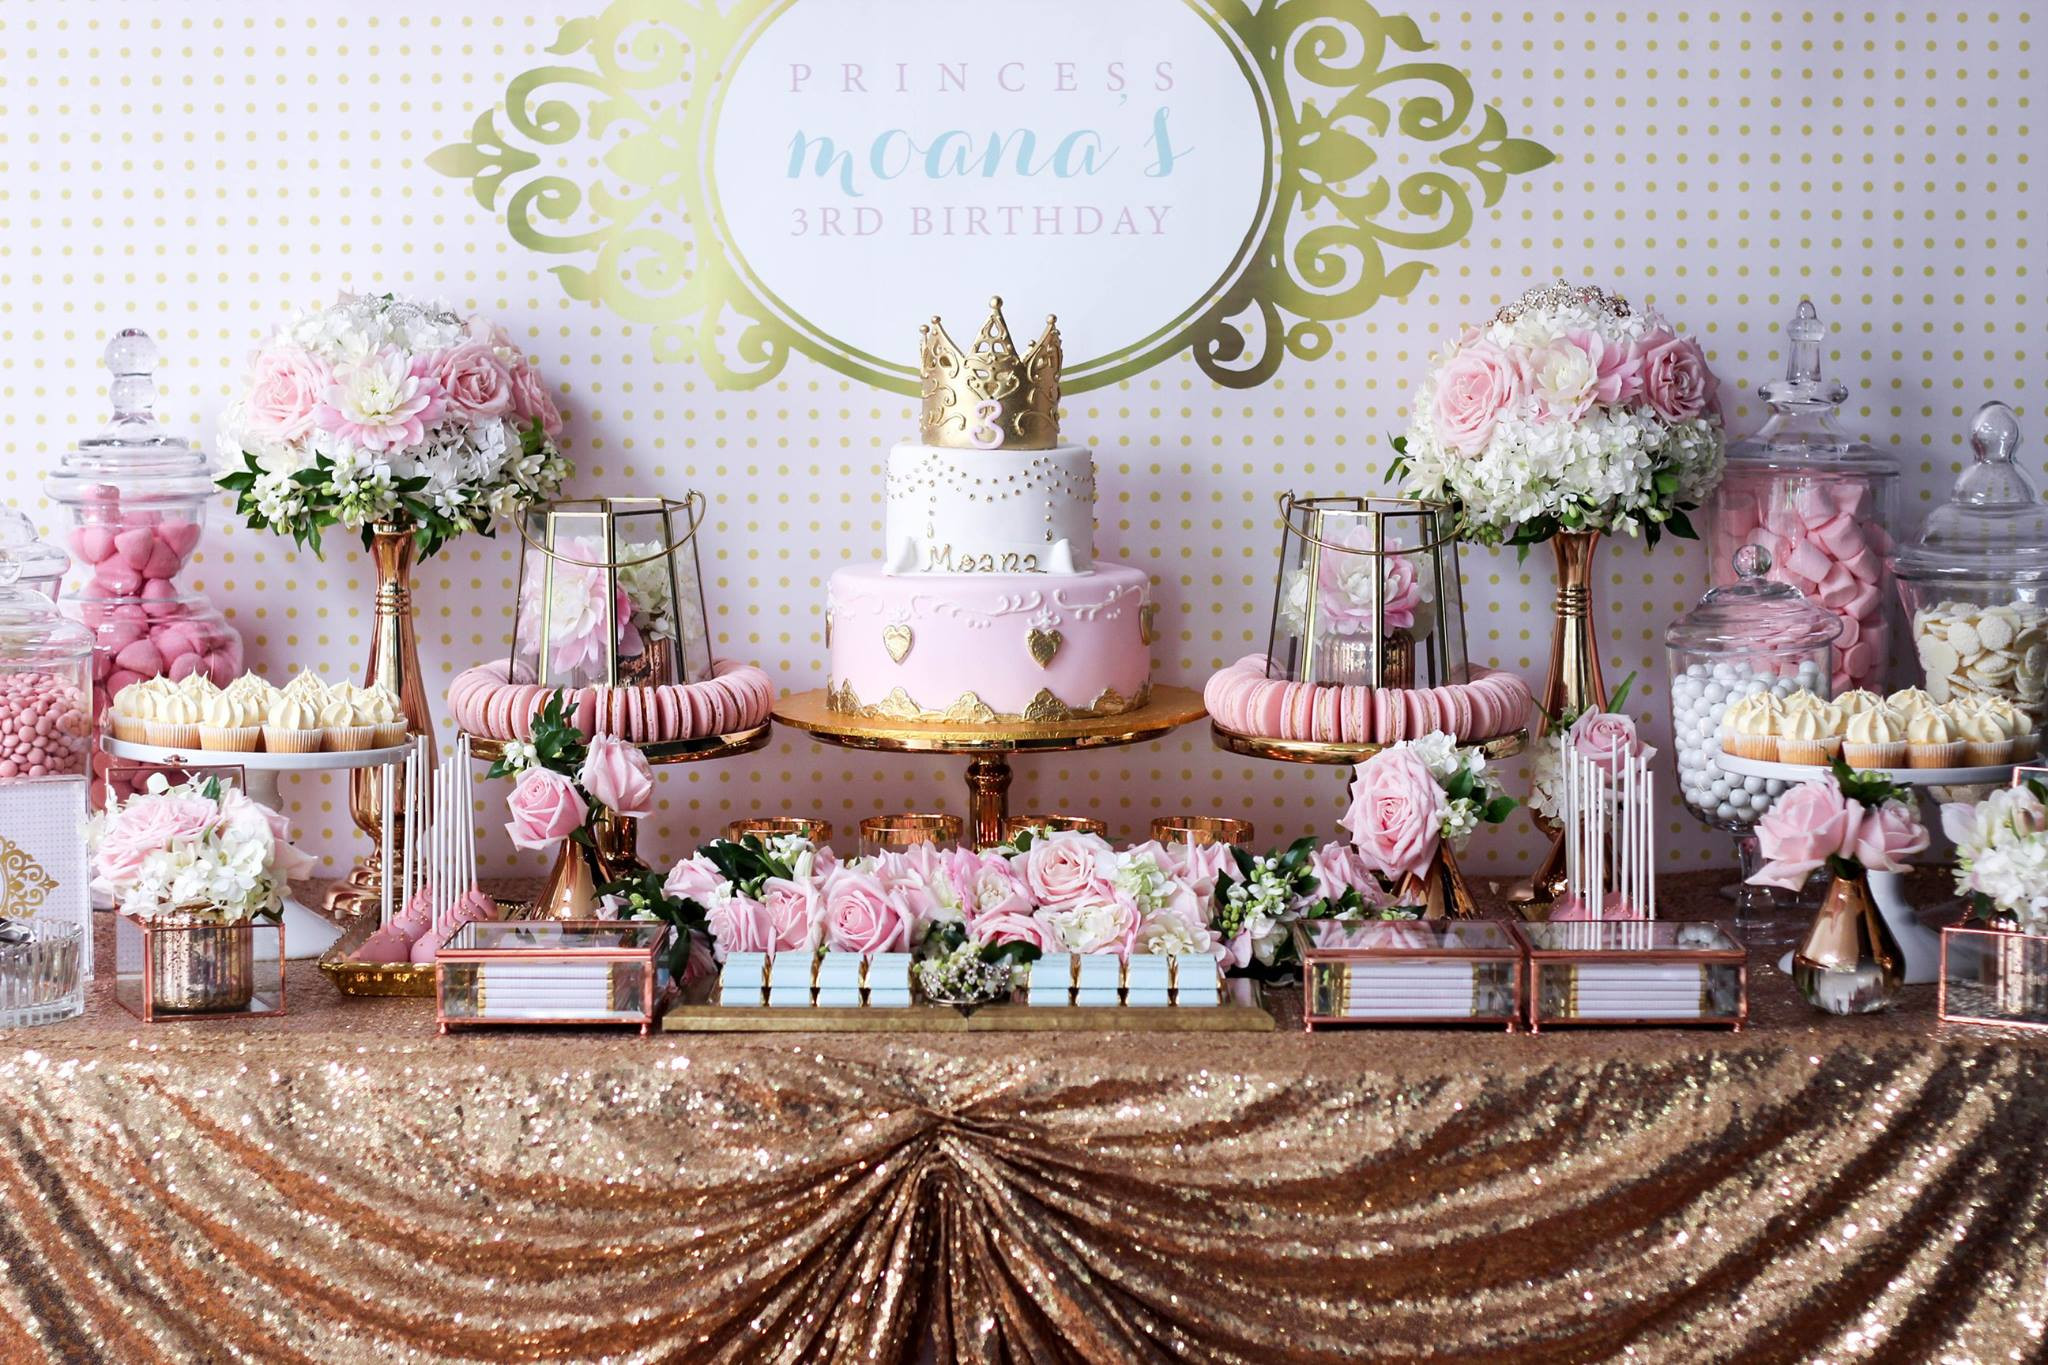 Best ideas about Princess Themed Birthday Party . Save or Pin PARTIES & EVENTS Now.